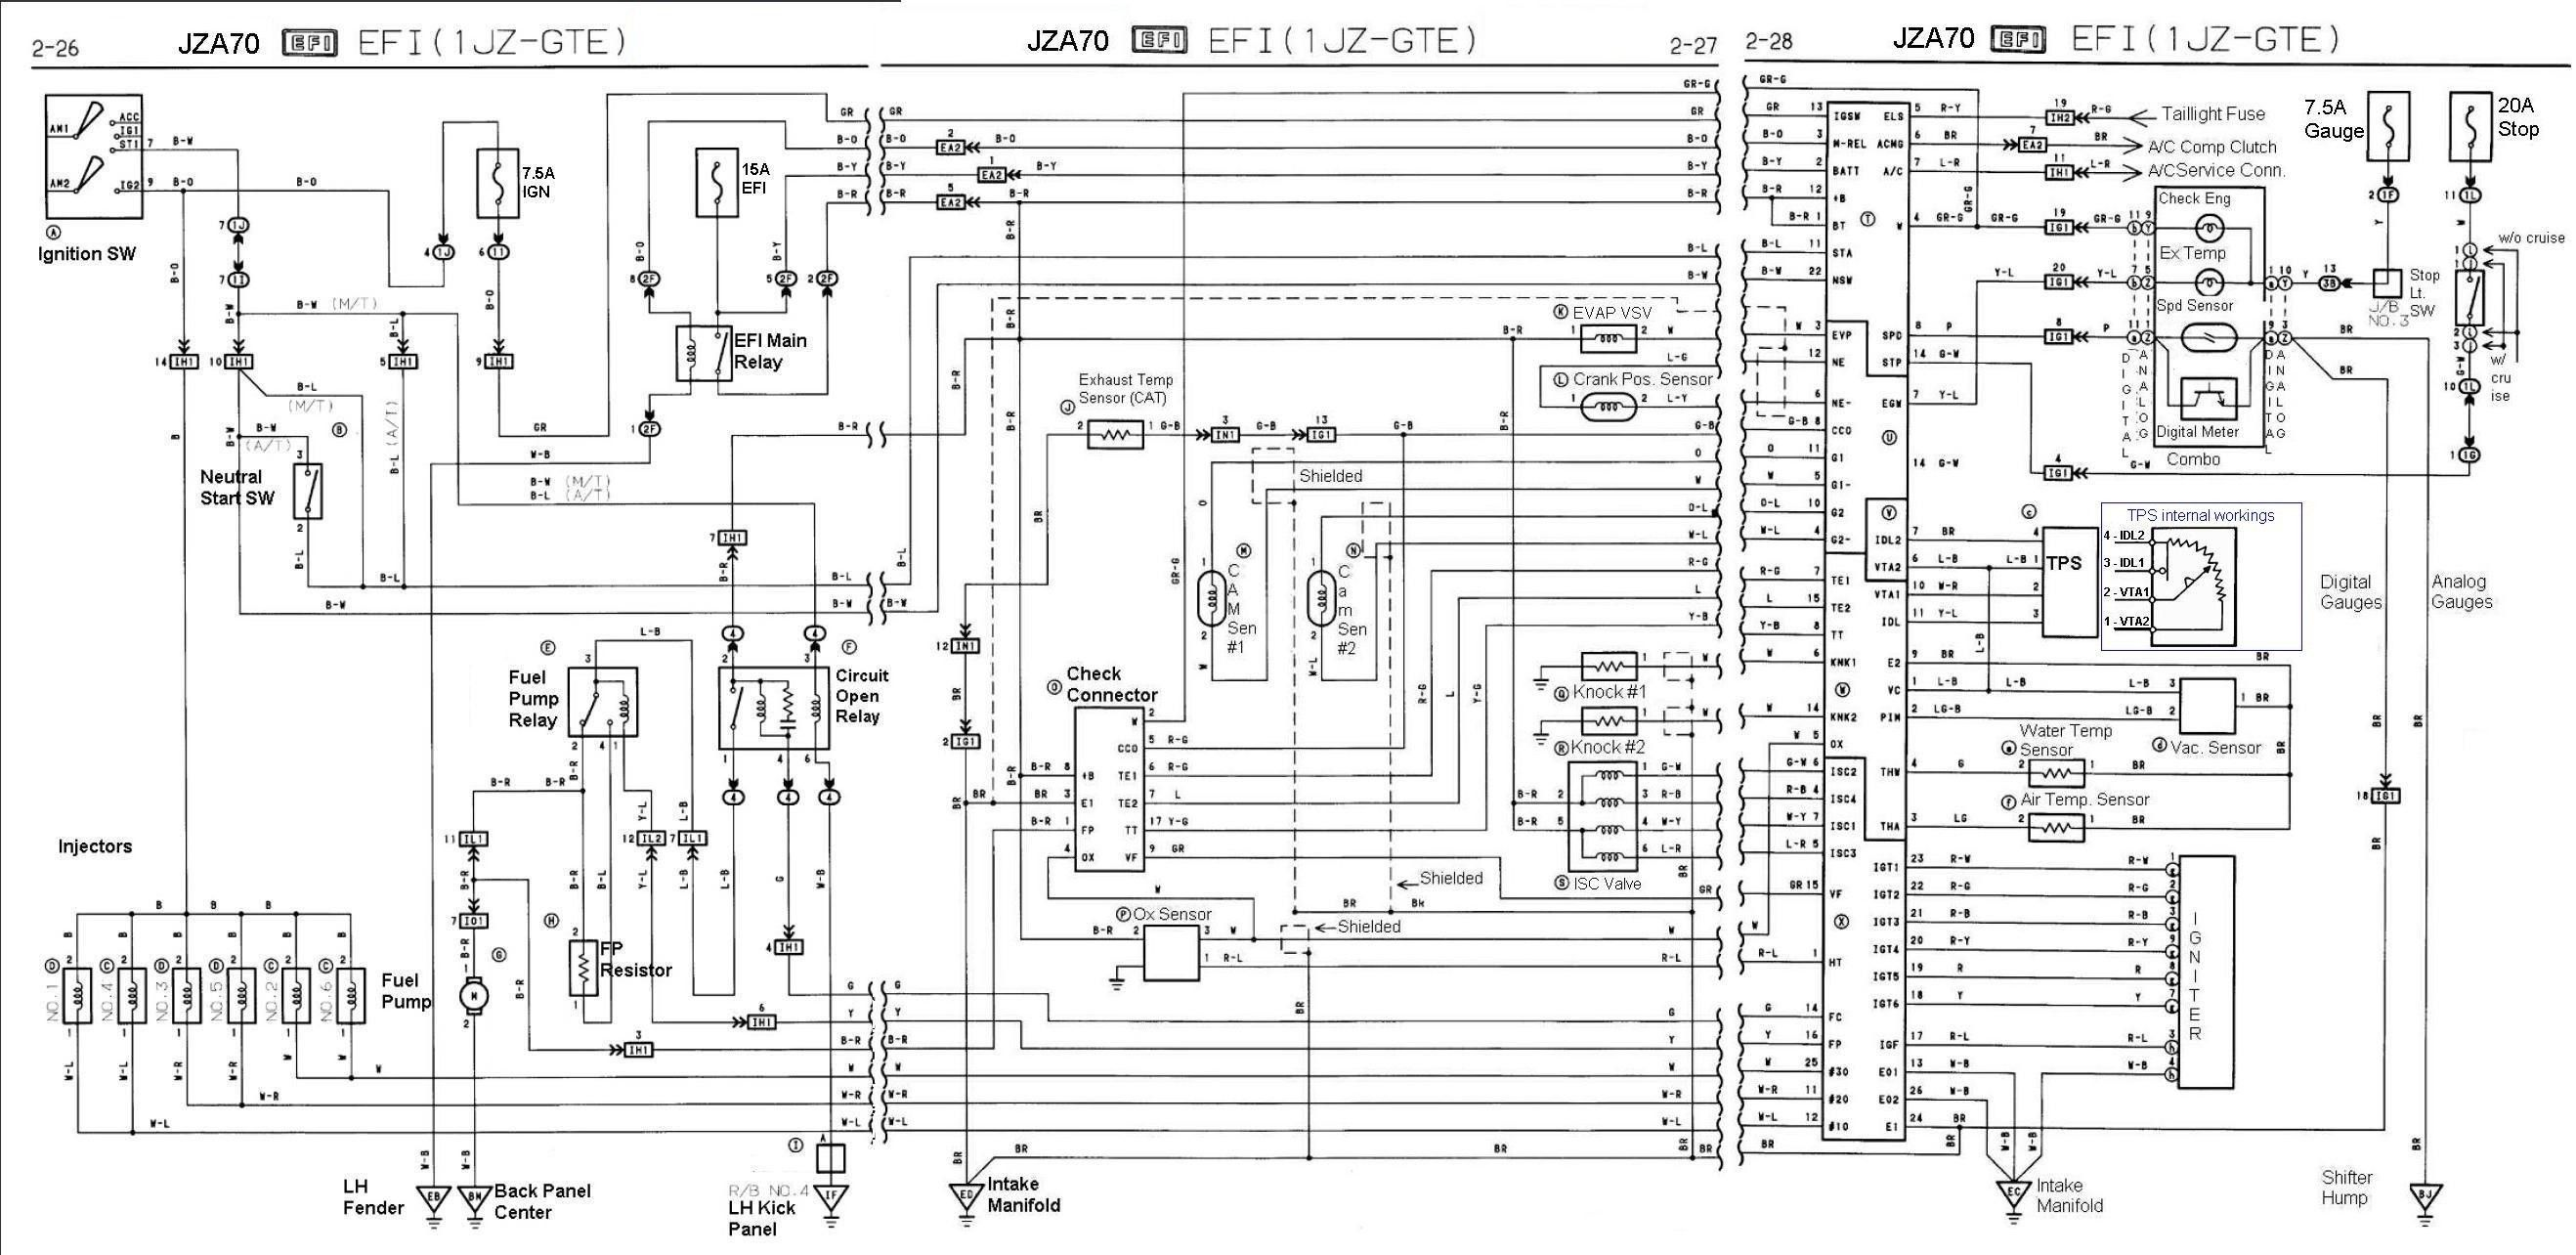 Bmw E46 Pdc Wiring Diagram Valid Bmw E39 Wiring Diagram Manual Refrence  Various Jza70 And 1jz Gte Of Bmw E46 Pdc Wiring Diagram On Bm… in 2020 |  Bmw e46, Diagram, E46 coupePinterest